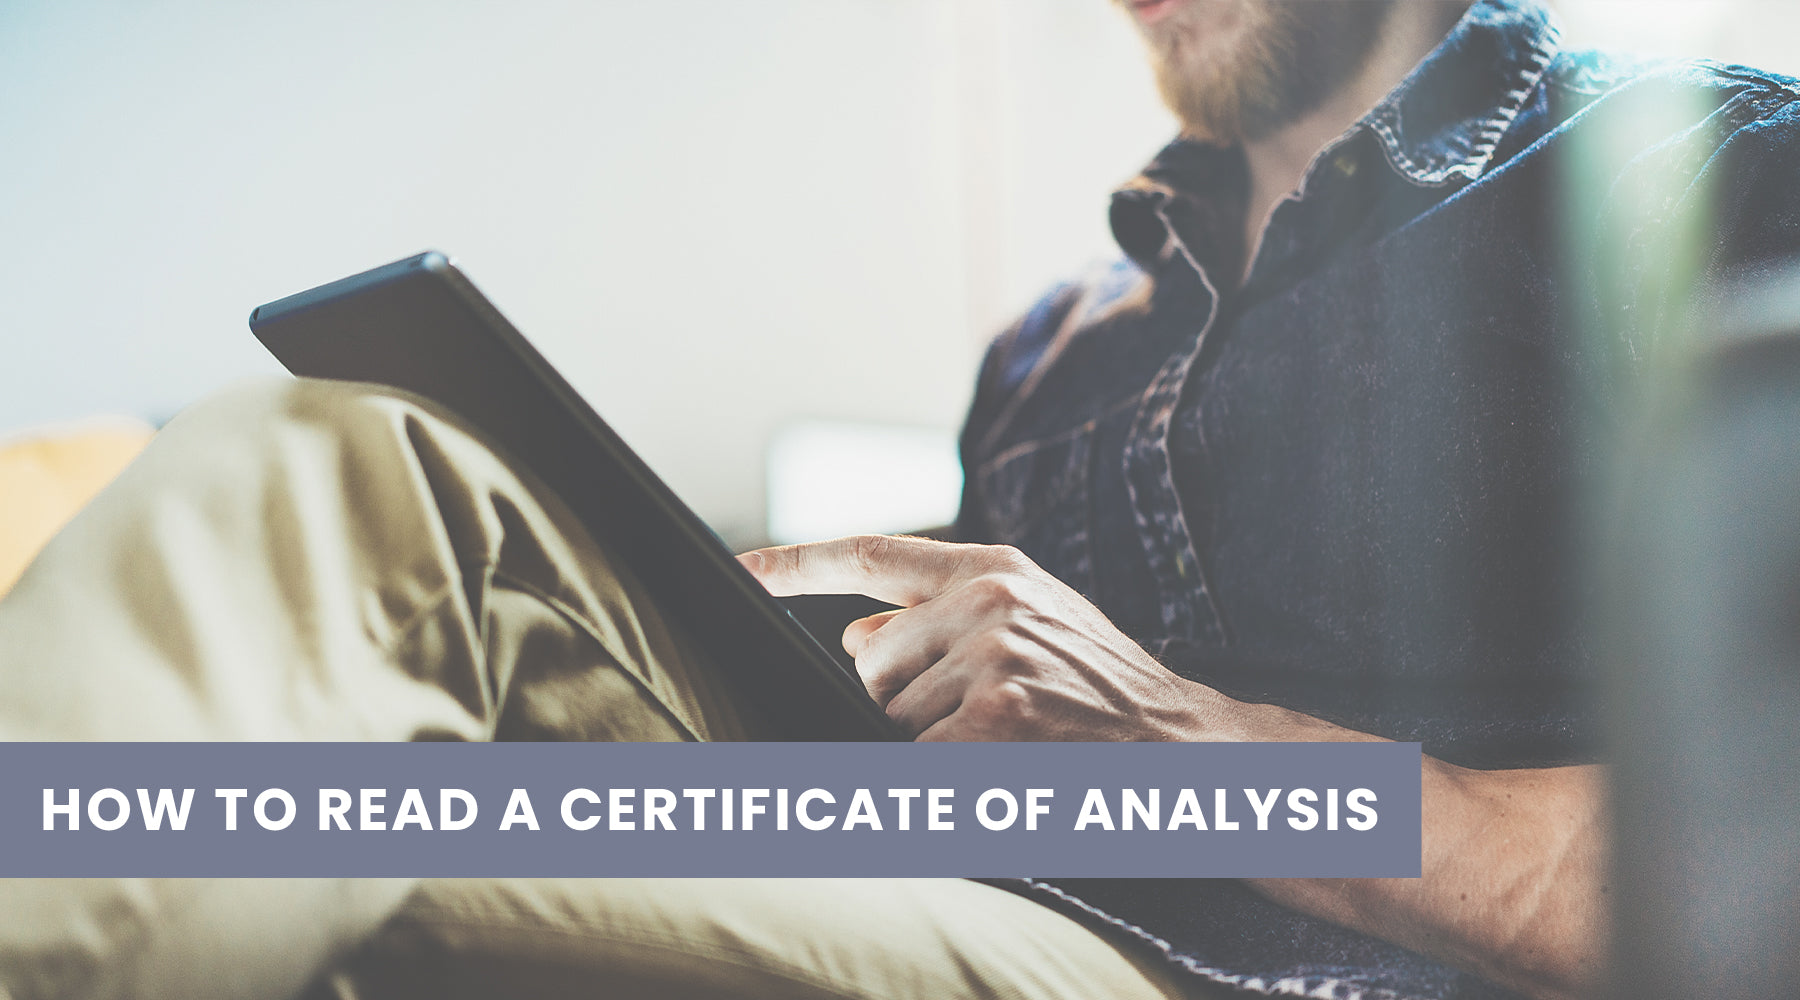 How to Read a Certificate of Analysis